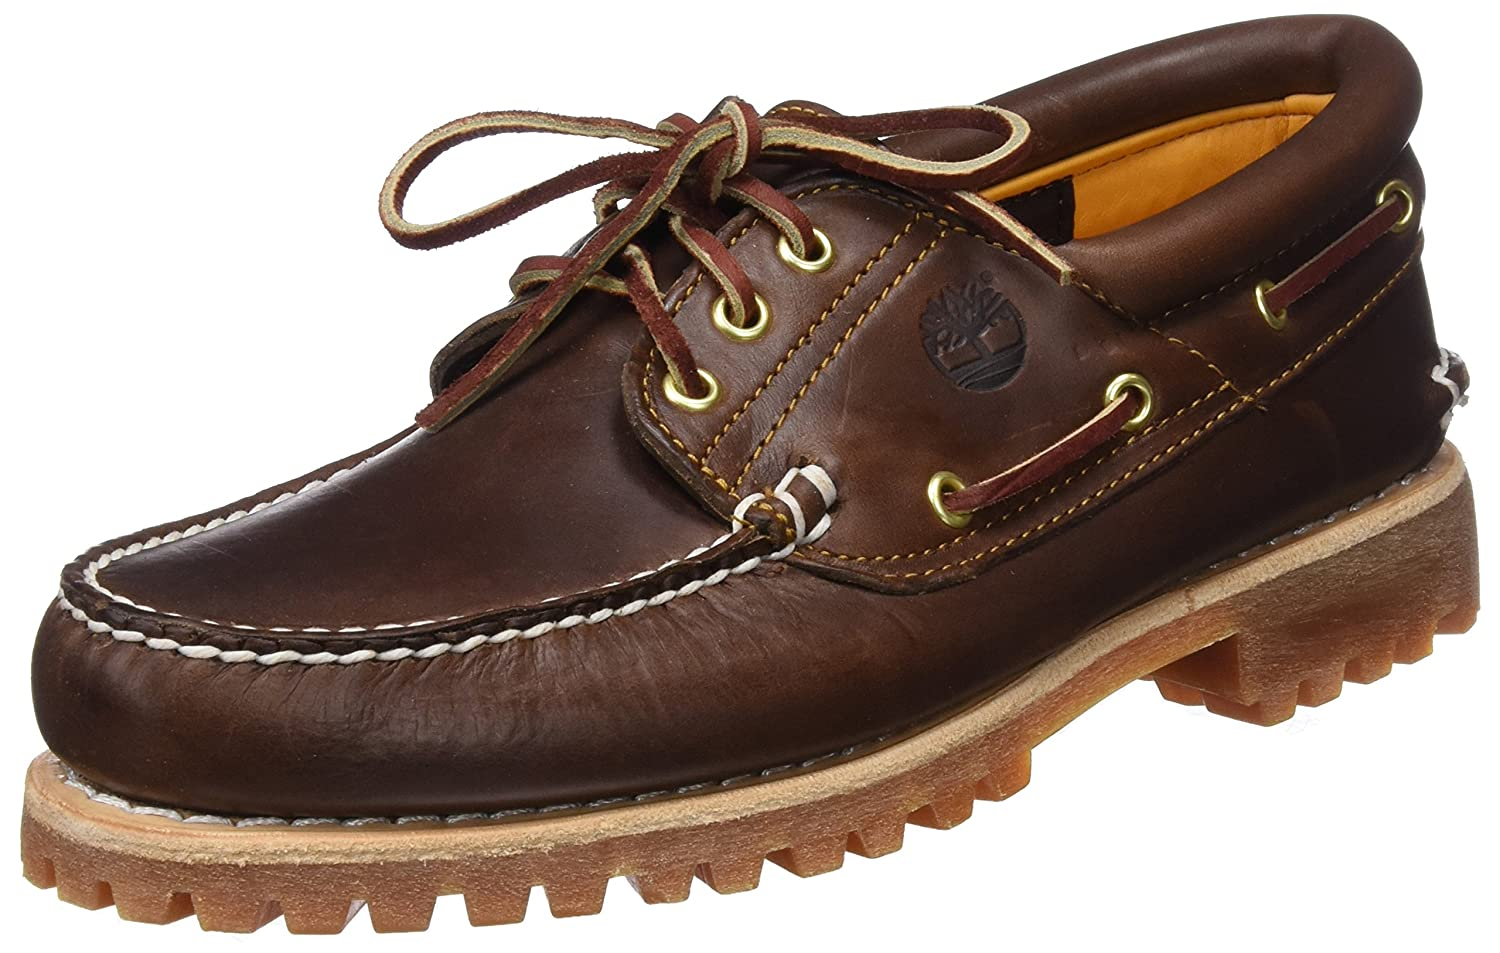 b919d72814 Amazon.com | Timberland Men's Icon Three-Eye Classic Shoe | Loafers &  Slip-Ons